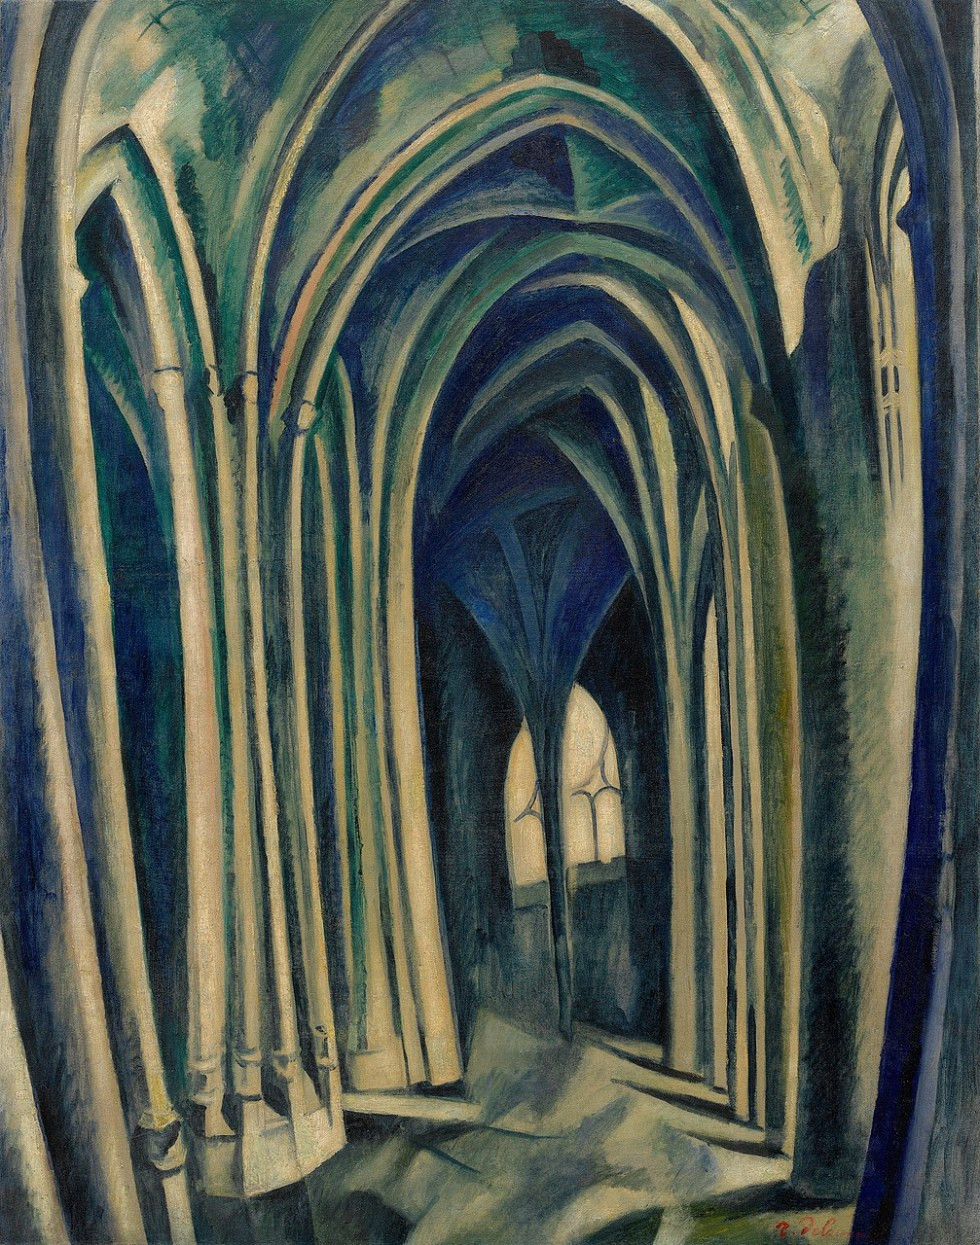 Robert Delaunay, Saint Severin No. 3, 1909